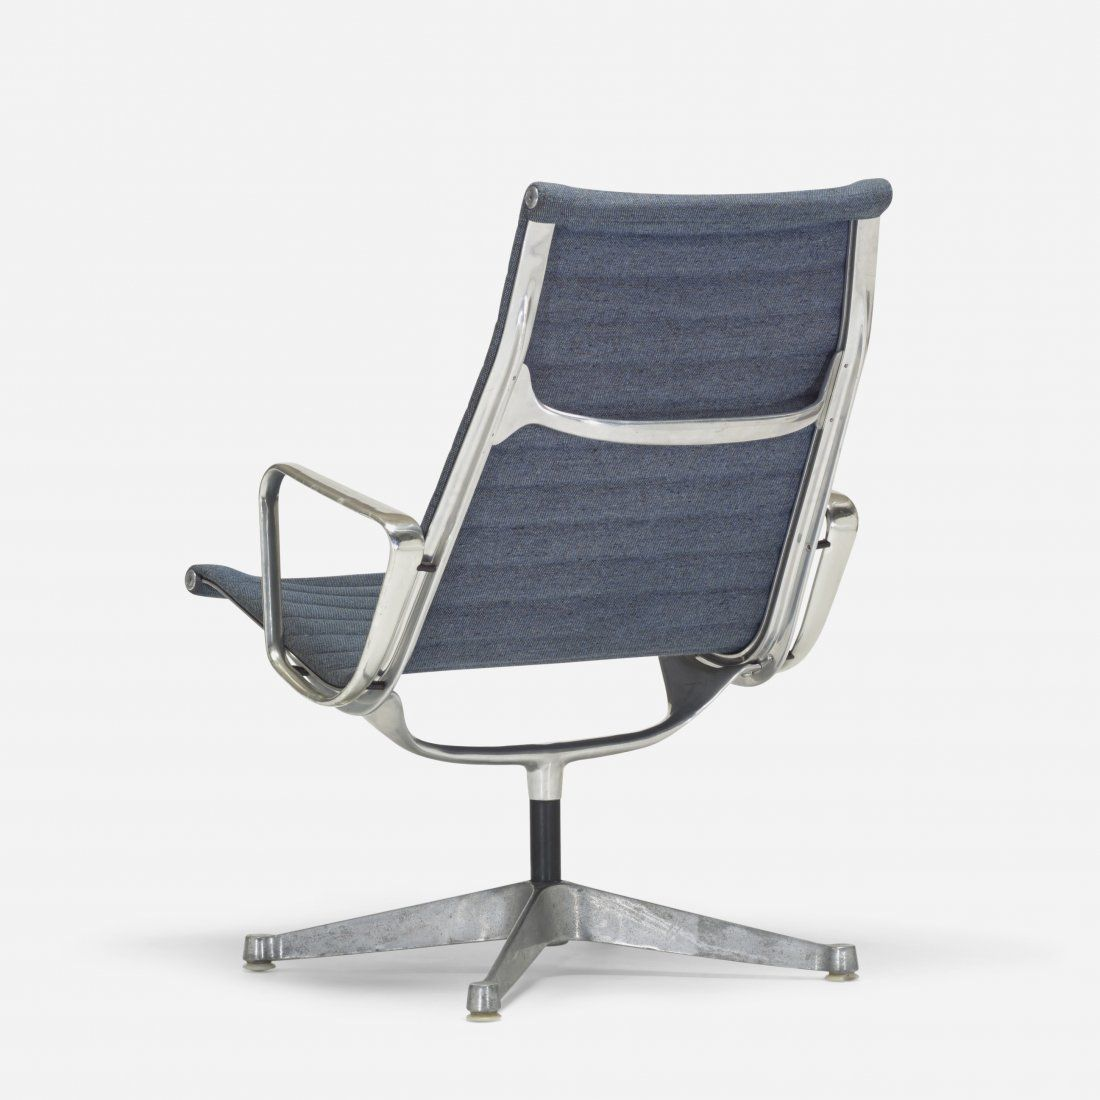 Charles and Ray Eames; 'Aluminum Group' Armchair for